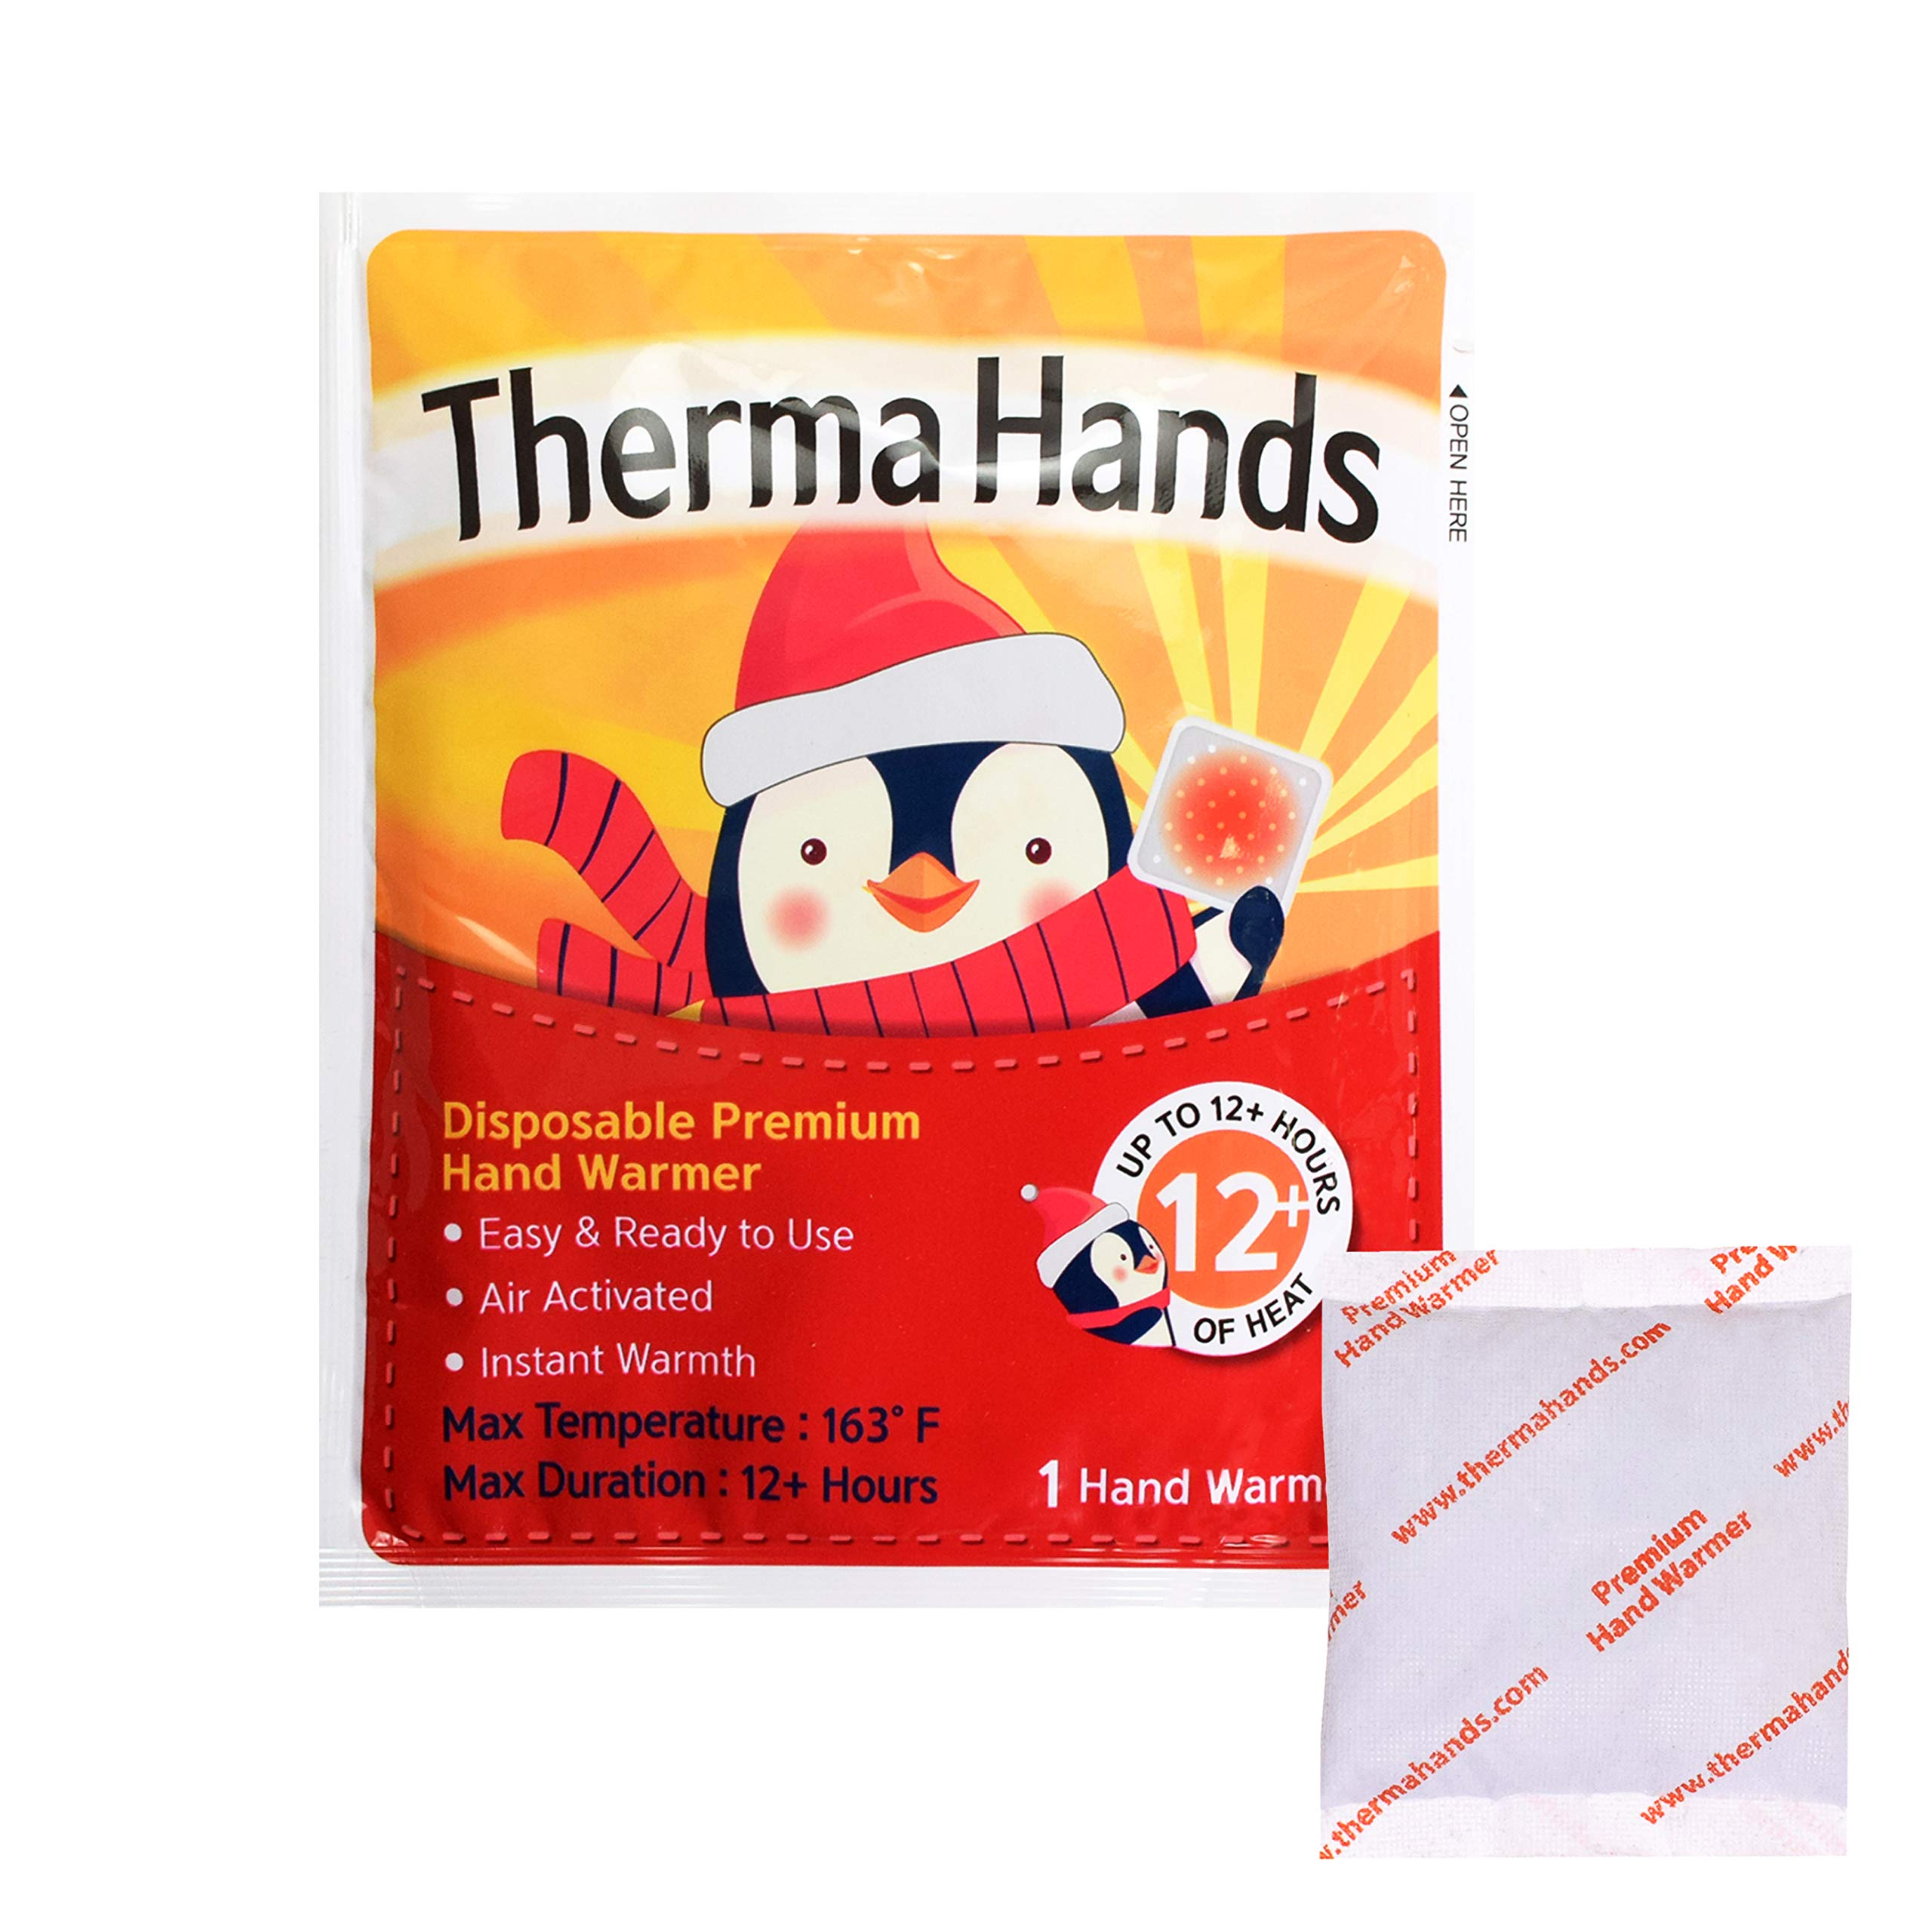 ThermaHands Hand Warmers (30 Packs) - Premium Quality (Size: 3.5 inch x 4 inch, Duration: 12+ Hours, Max Temp: 163 F) Air-Activated, Convenient, Safe, Natural, Odorless, Long Lasting Warmers by ThermaHands